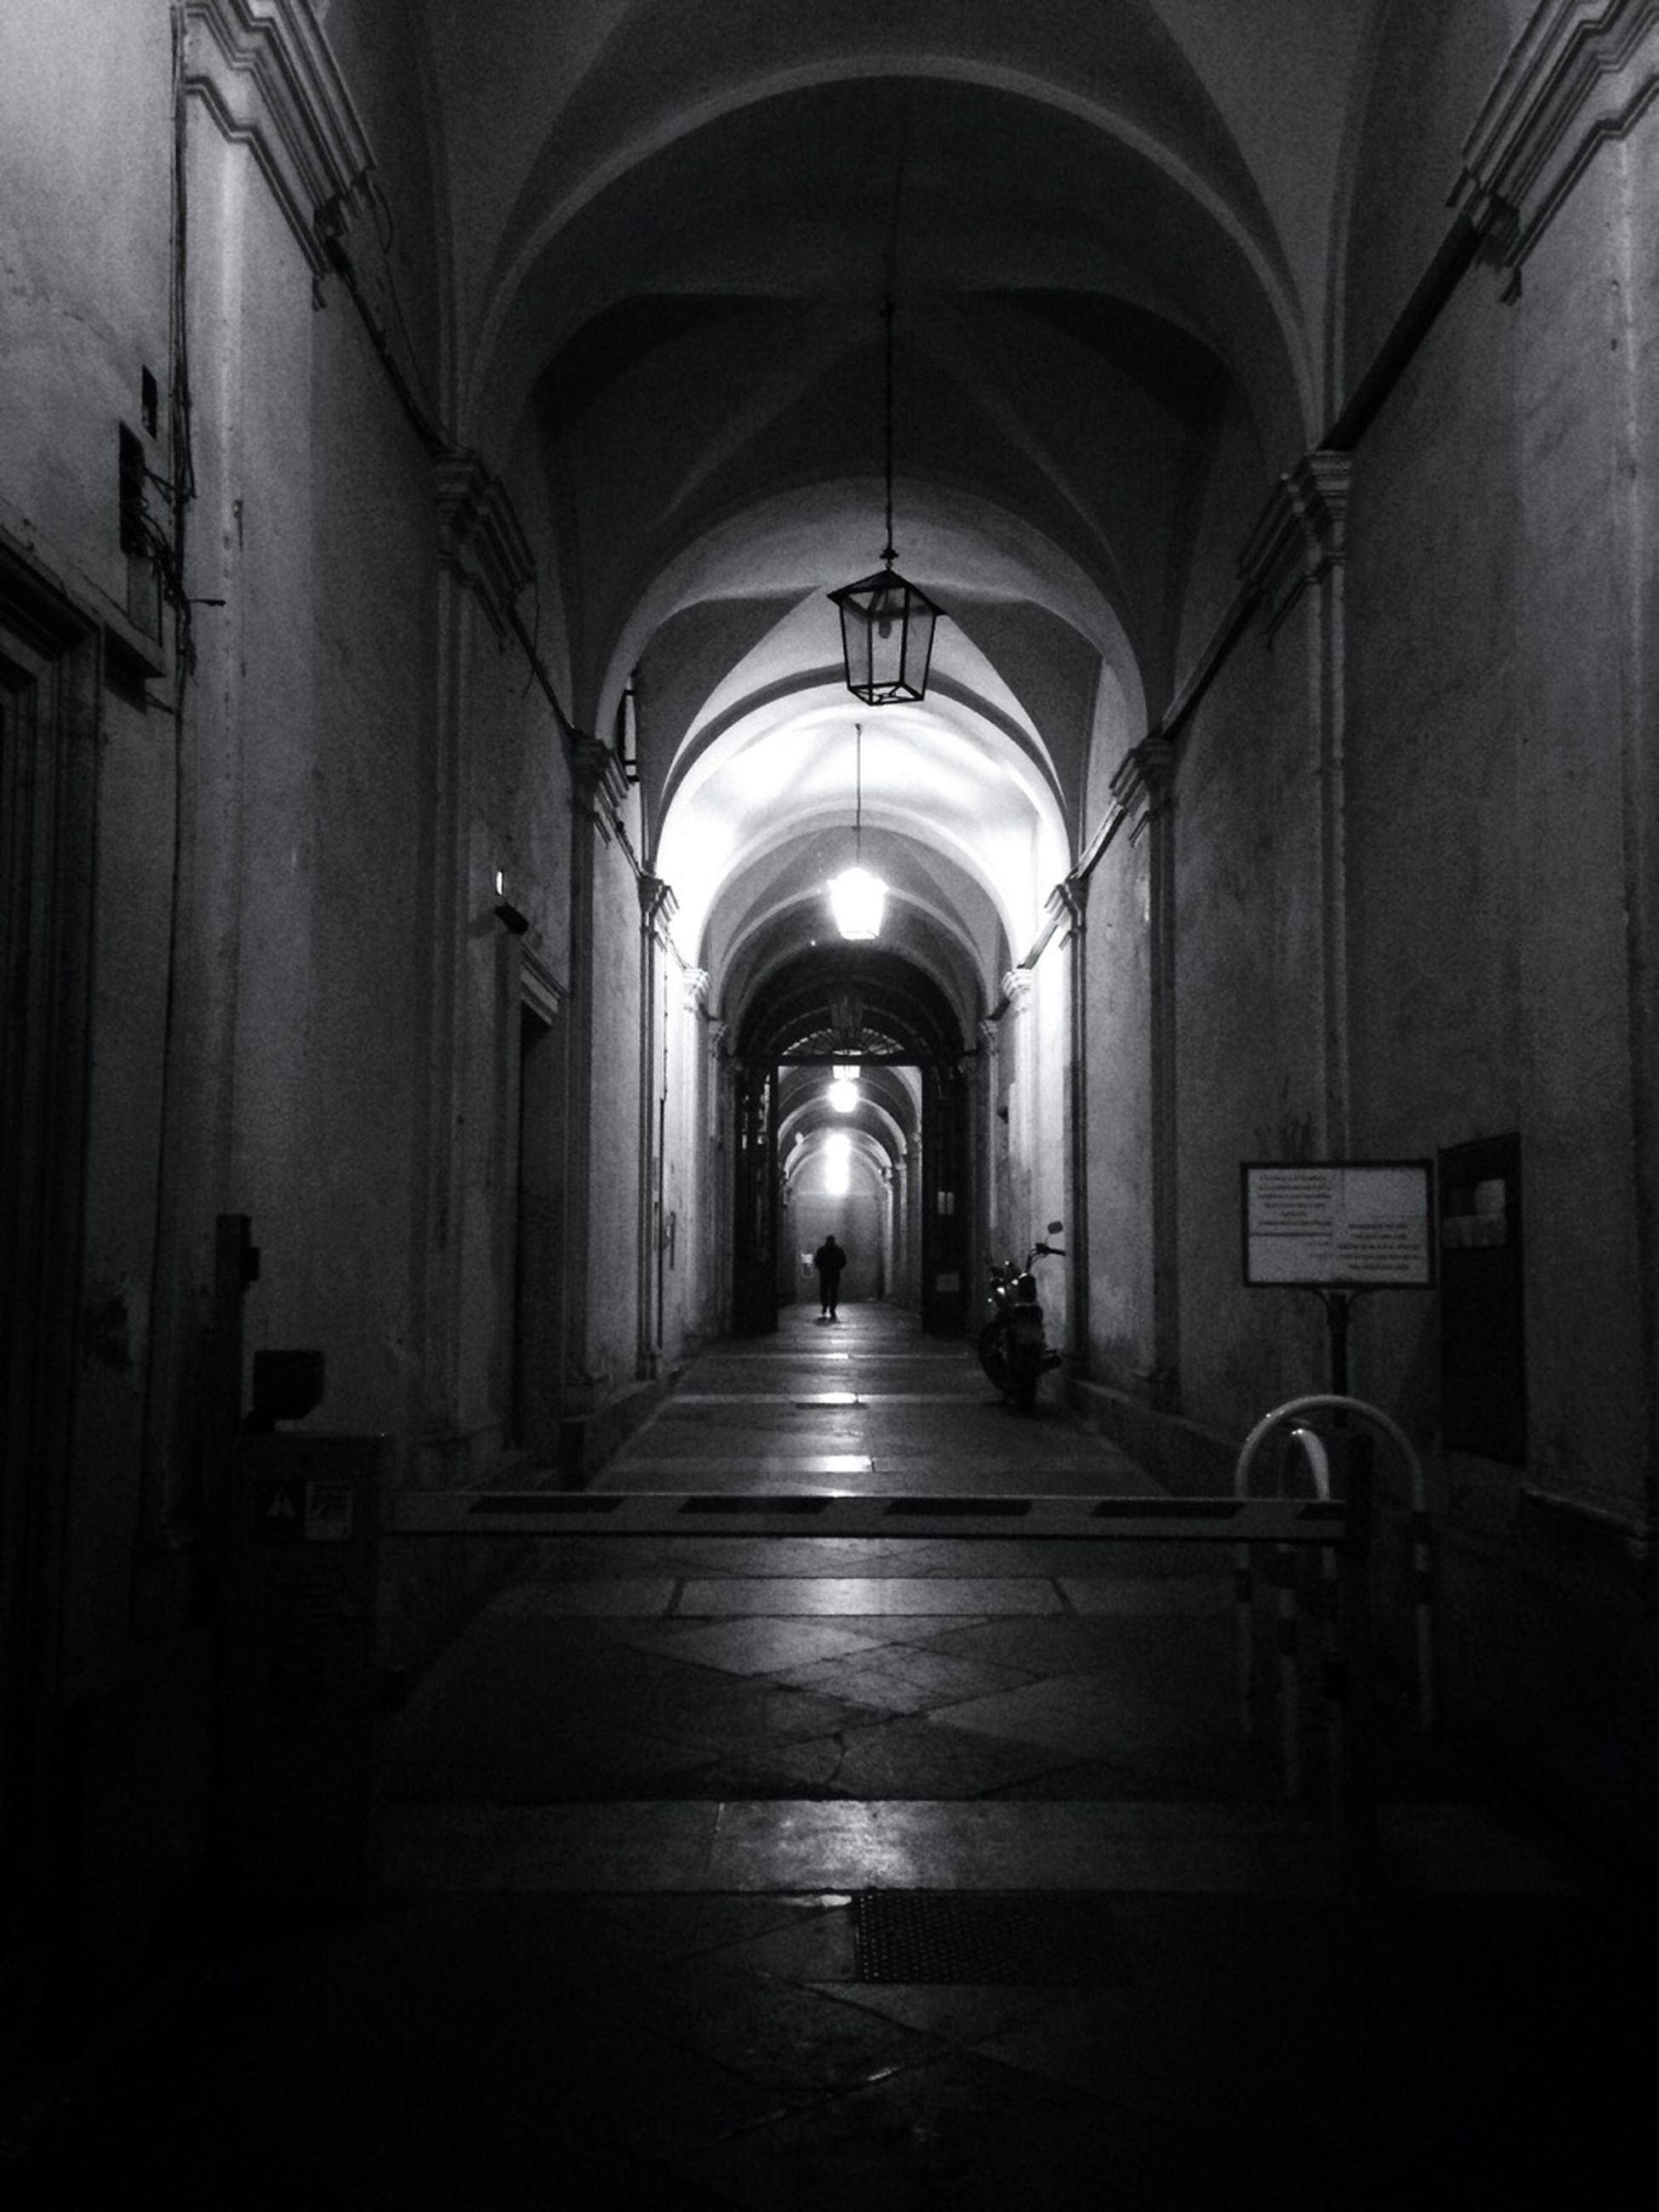 indoors, the way forward, diminishing perspective, architecture, corridor, built structure, arch, empty, vanishing point, narrow, transportation, tunnel, building, long, illuminated, absence, in a row, ceiling, no people, lighting equipment